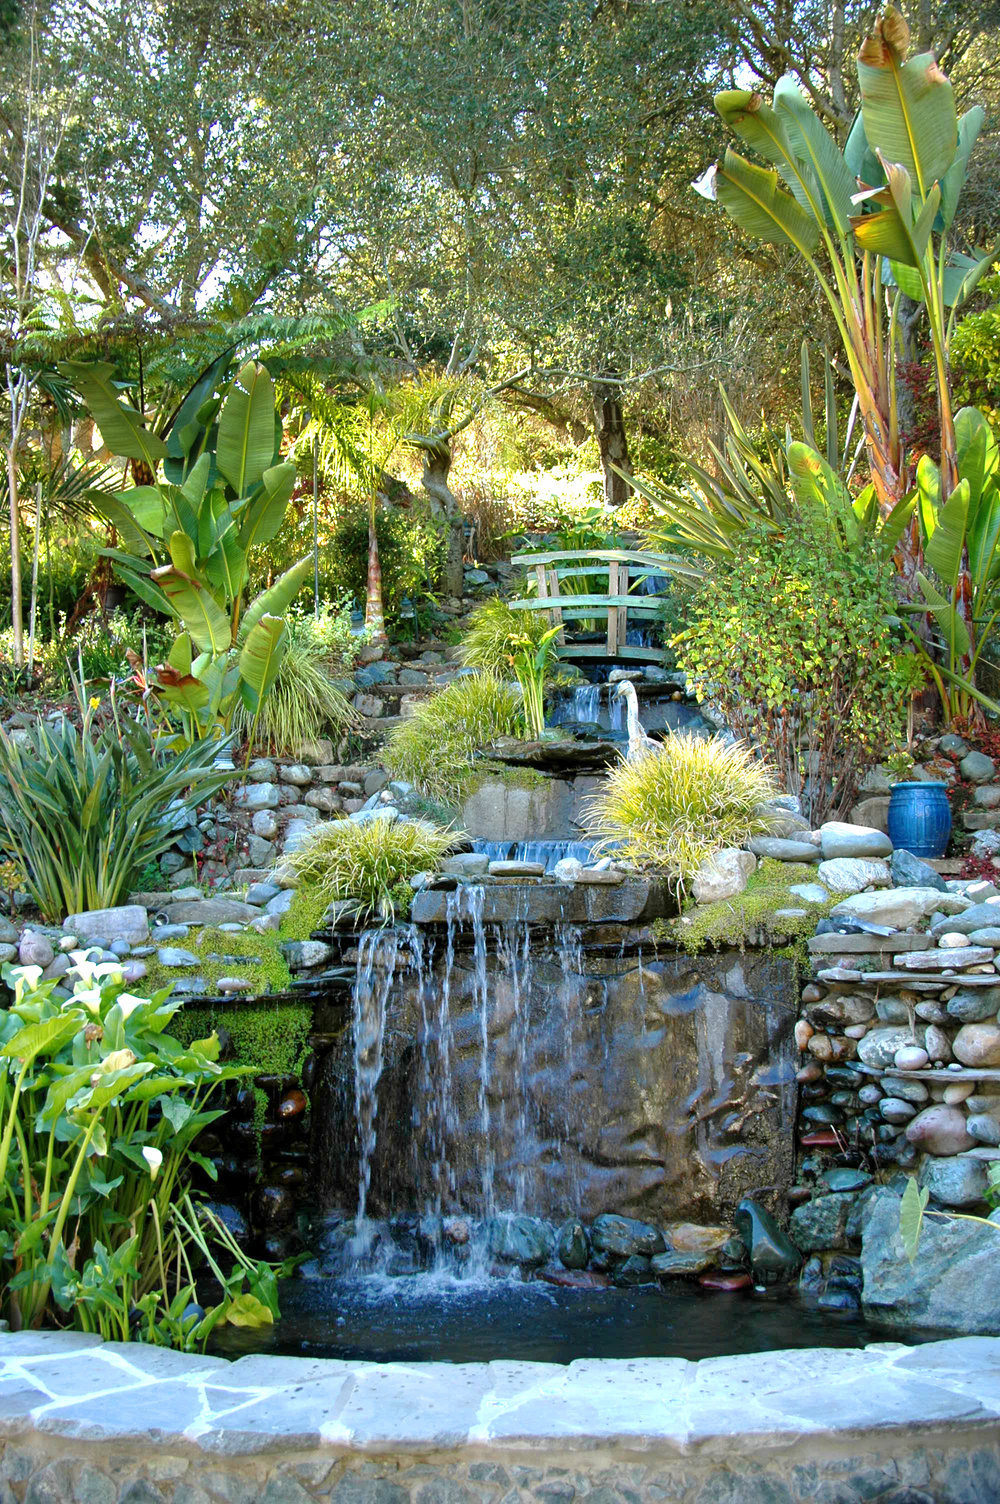 Mature Landscaping - 40' Waterfall with Koi PondShadowbrook-Like Sub-Tropical GardenOutdoor BBQ, Fireplace and KitchenExtensive Landscaping ThroughoutOver 100 Rose BushesTrees: Citrus, Plum, Apple, Pear, Asian Pear, Peach, Nectarine, Persimmon, FigNature Abounds: Quail, Ducks, Hawks, OwlsLarge Organic Terraced Garden2+ Acre Prime Pinot Noir Vineyard Location